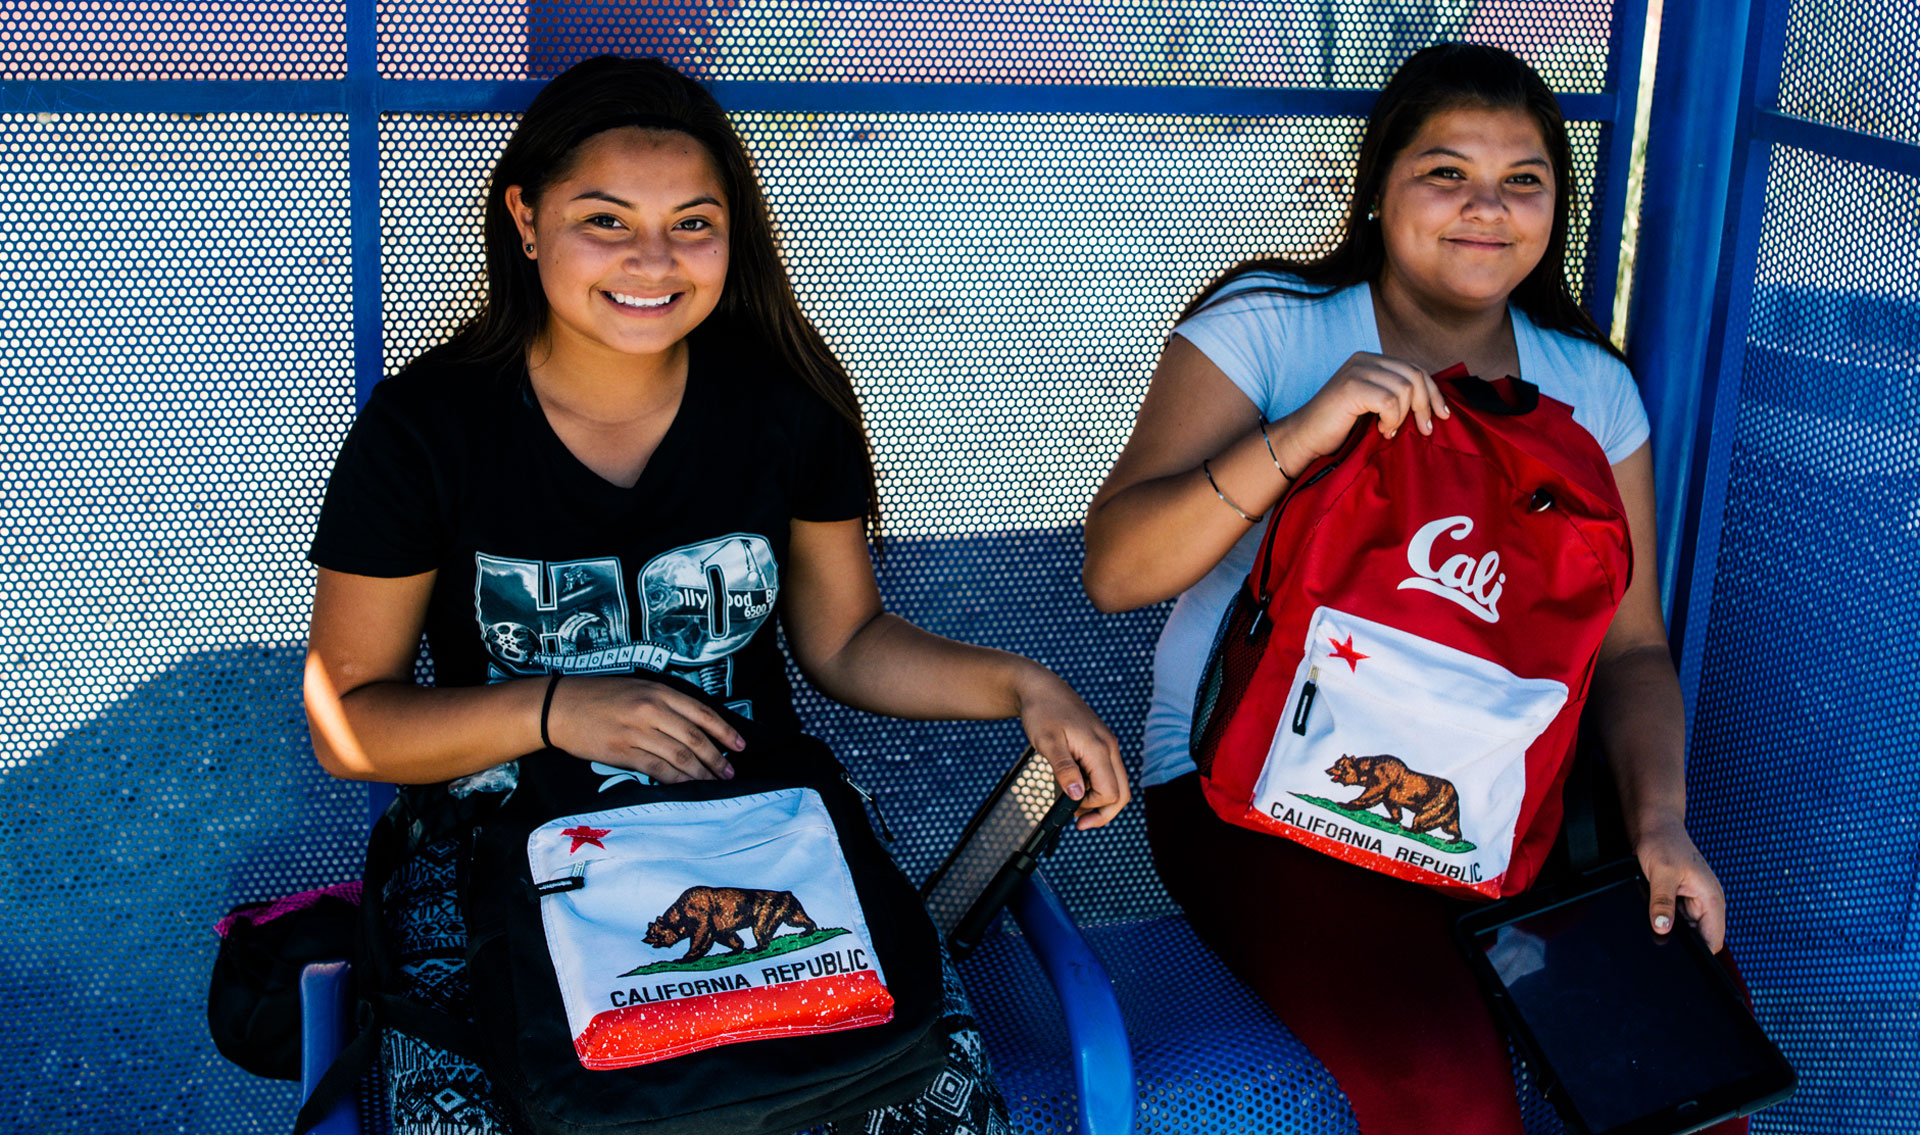 Thirteen-year-old twins Ruby Barraza and Esmeralda Valdez Barraza catch the 95 bus to Coachella to see some friends.